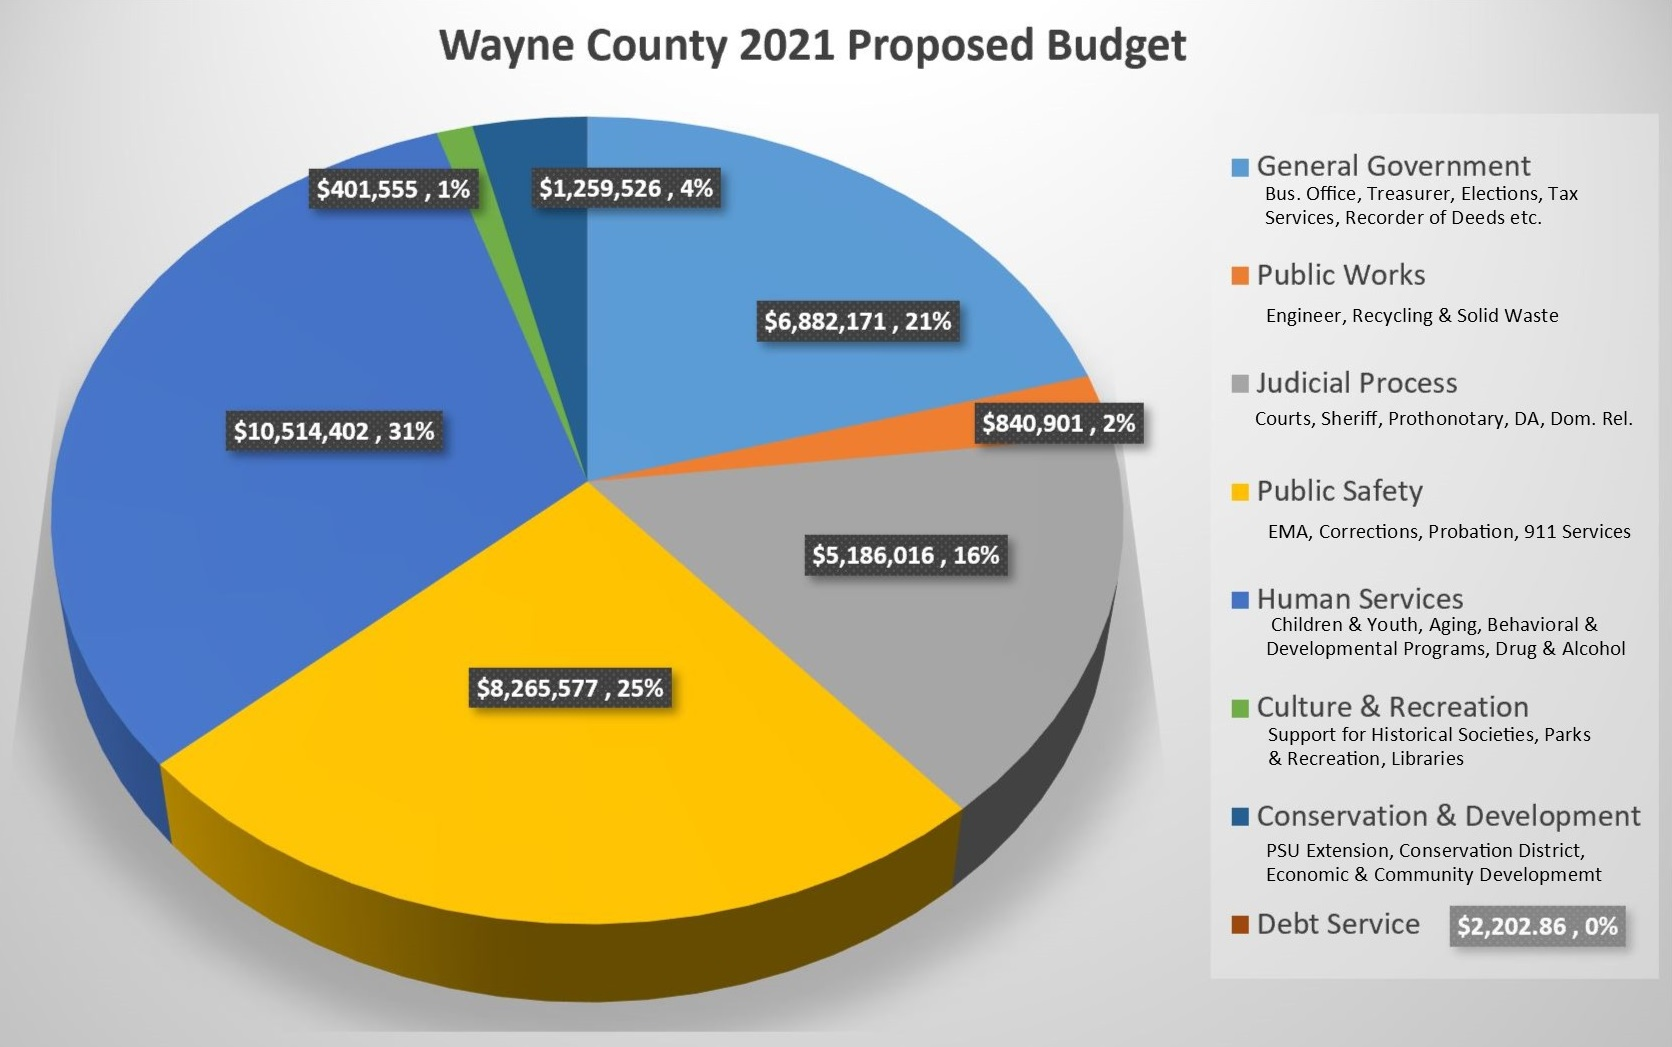 A Pie Chart showing the major expenditure categories in the proposed 2021 Wayne County Budget.